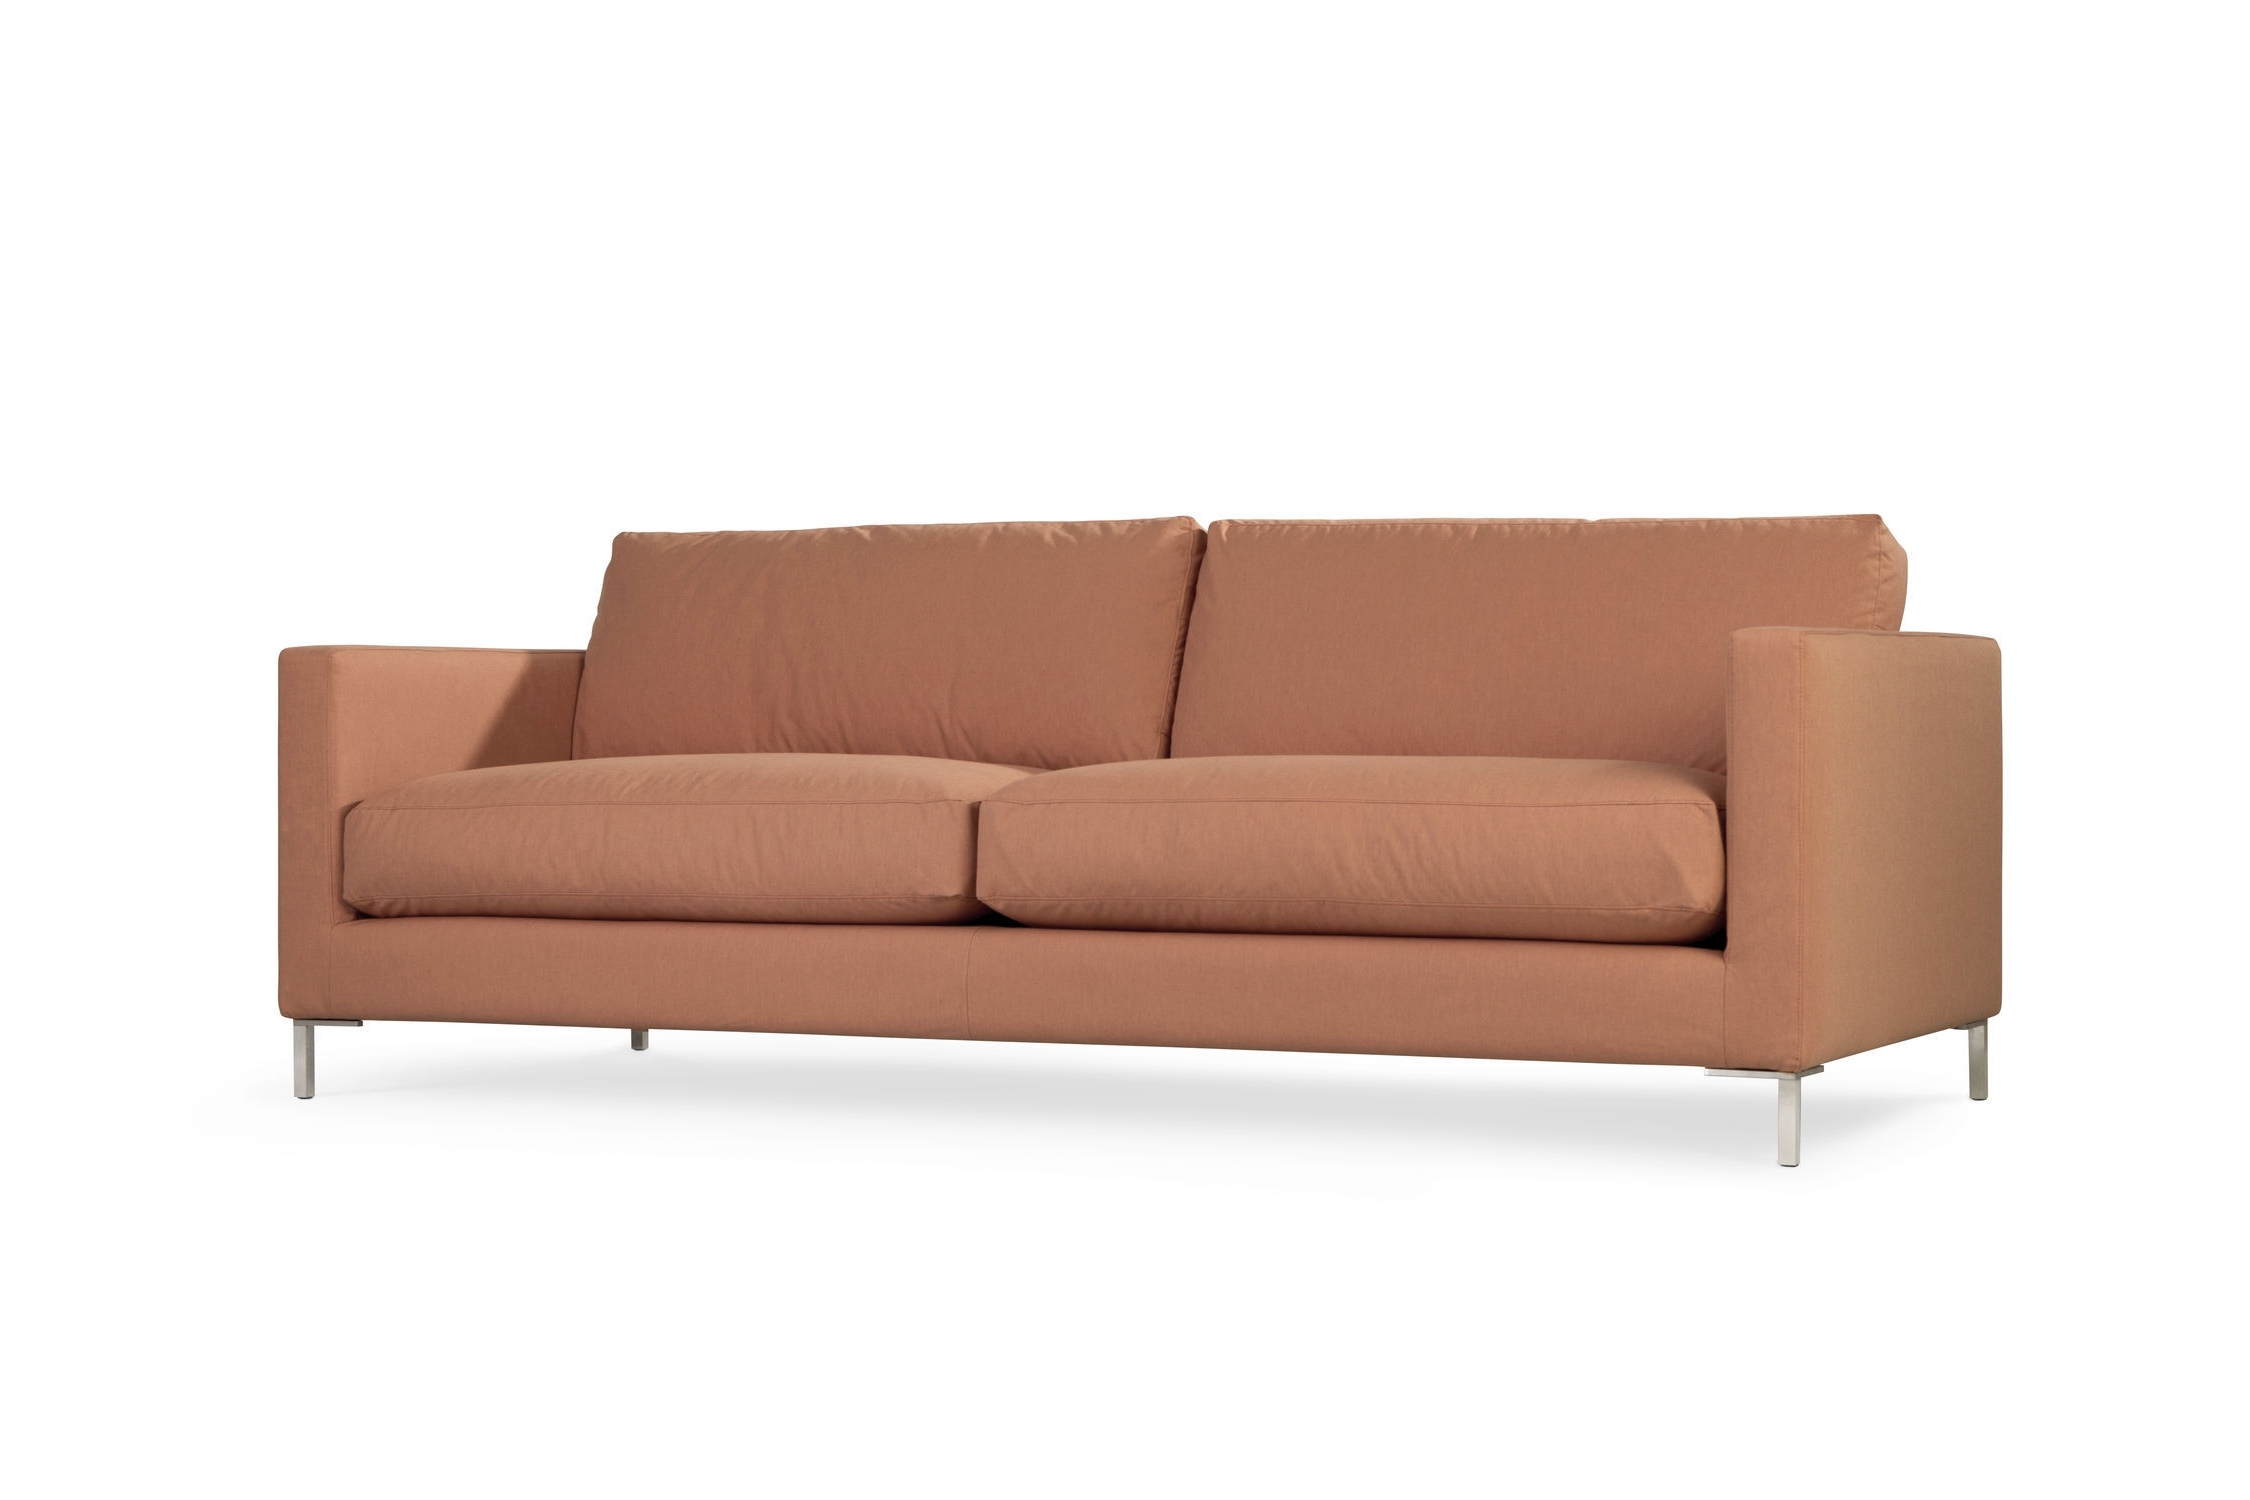 Furniture : Sofa Kijiji Oshawa Reclining Sofa Australia Klaussner Intended For Newest Oshawa Sectional Sofas (View 8 of 20)